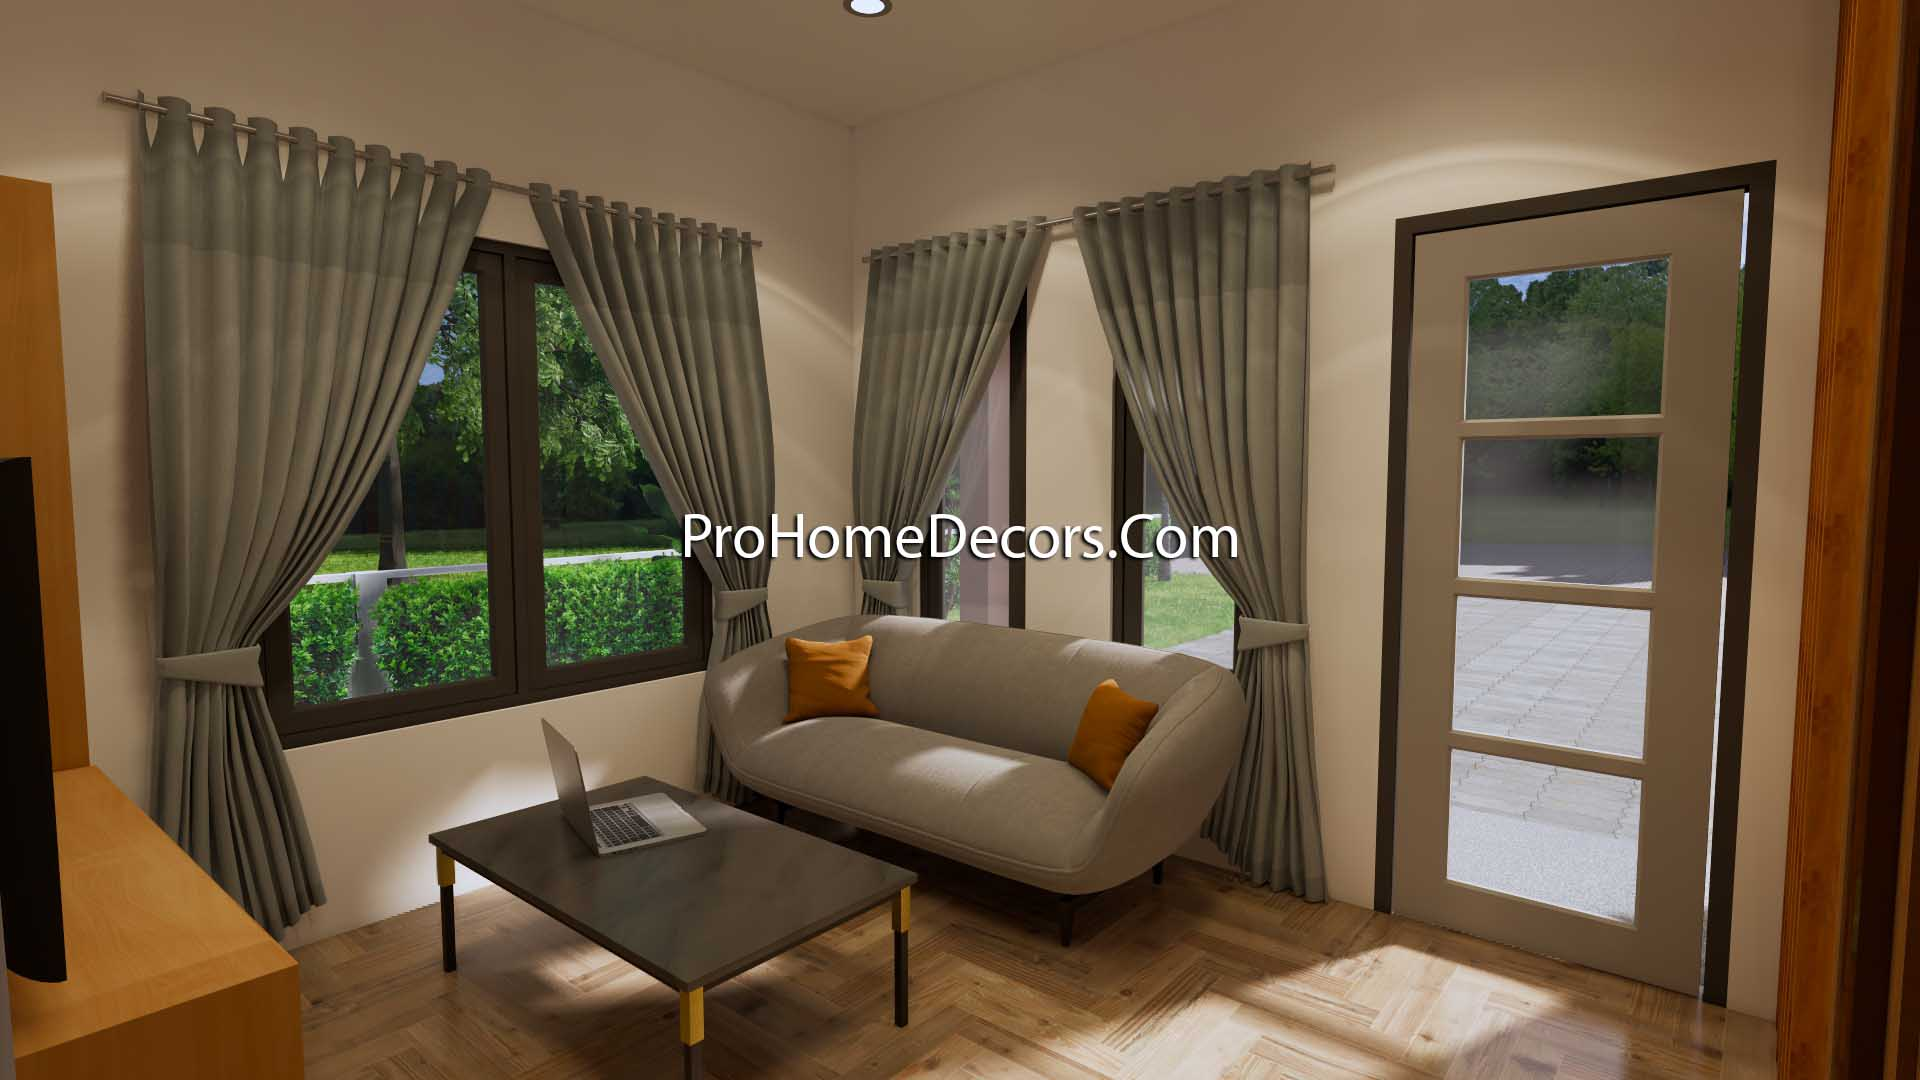 Small Home Design 6.5x6 Meter 22x20 Feet Hip Roof Living room 3